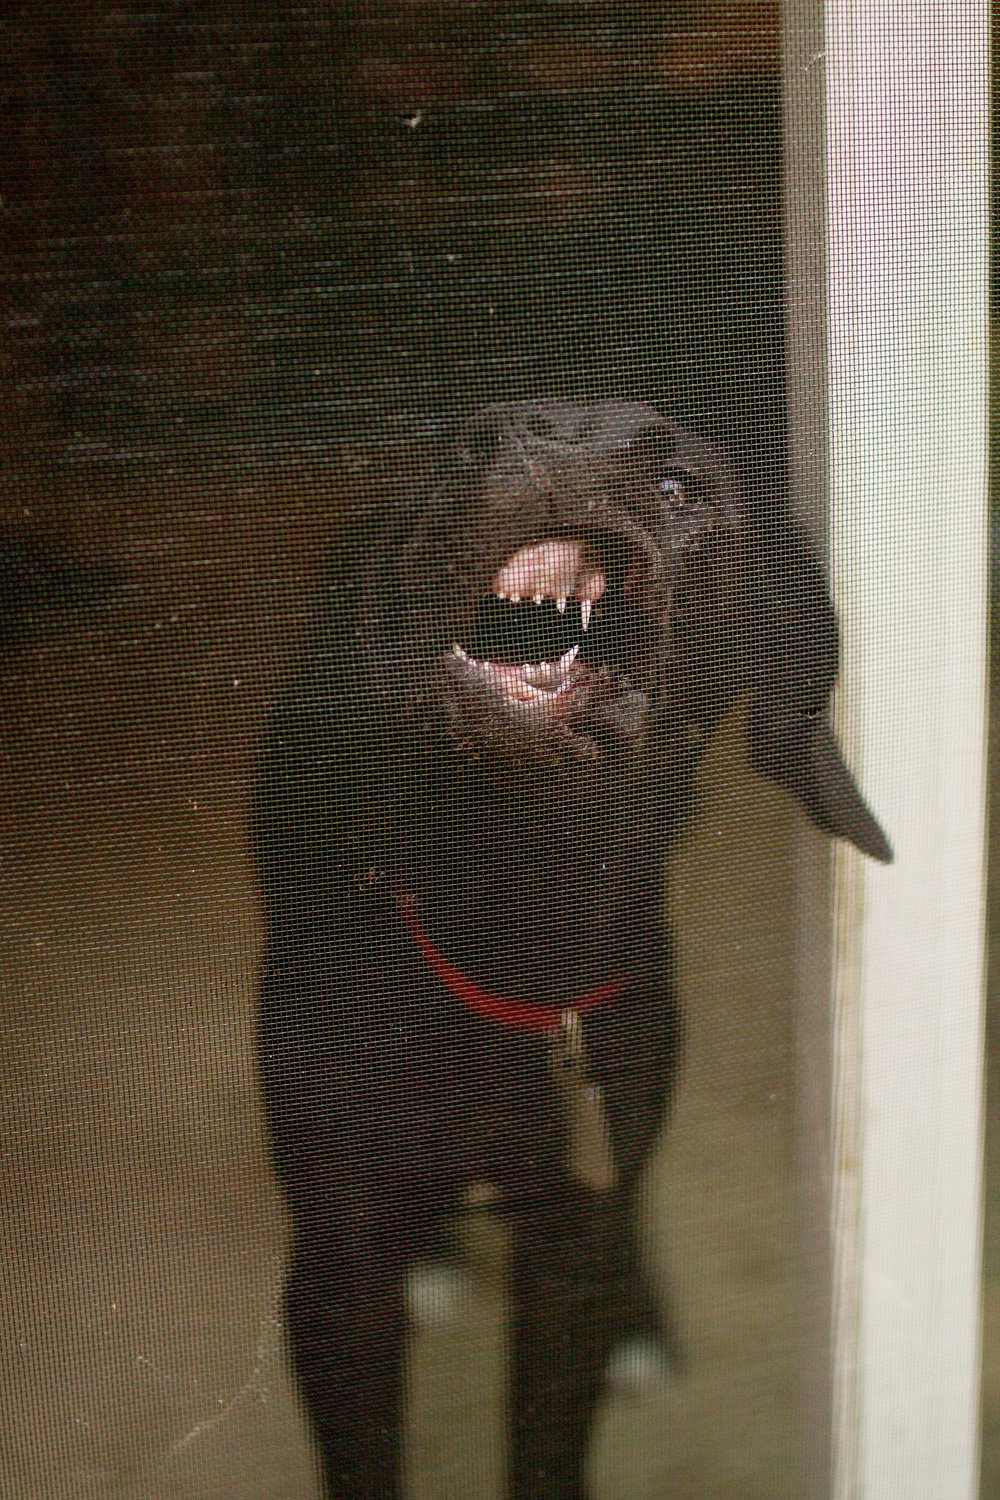 Here's a shot of Luna. Chewing on the screen door. She also eats mud.